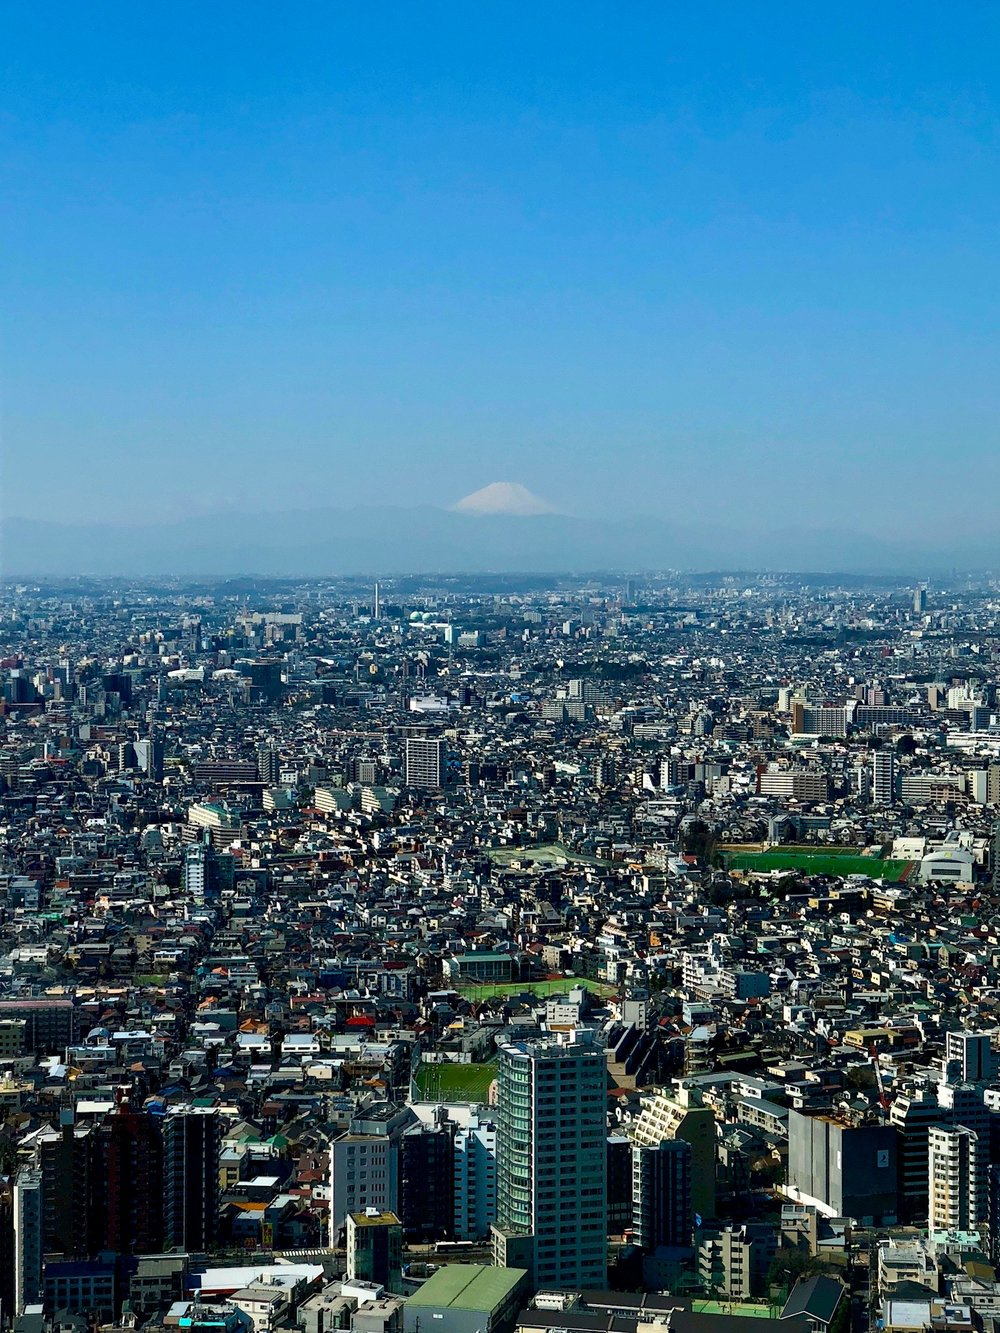 A good sense of just how big Tokyo really is... also Mt. Fuji can be seen in the distance